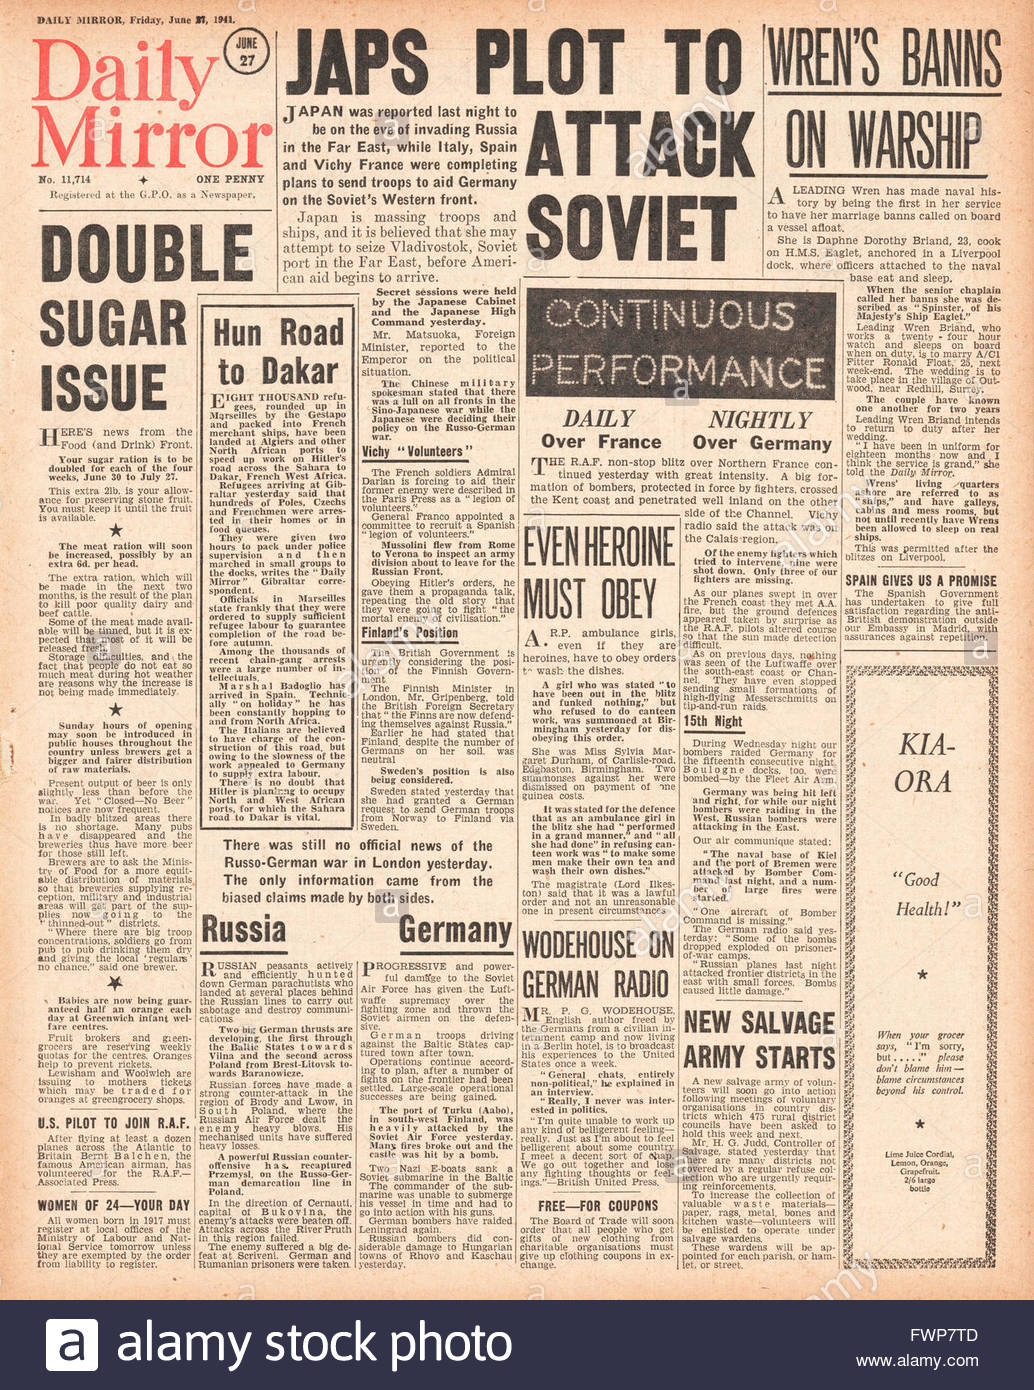 1941 front page  Daily Mirror Japanese plot to attack Russia Stock Photo